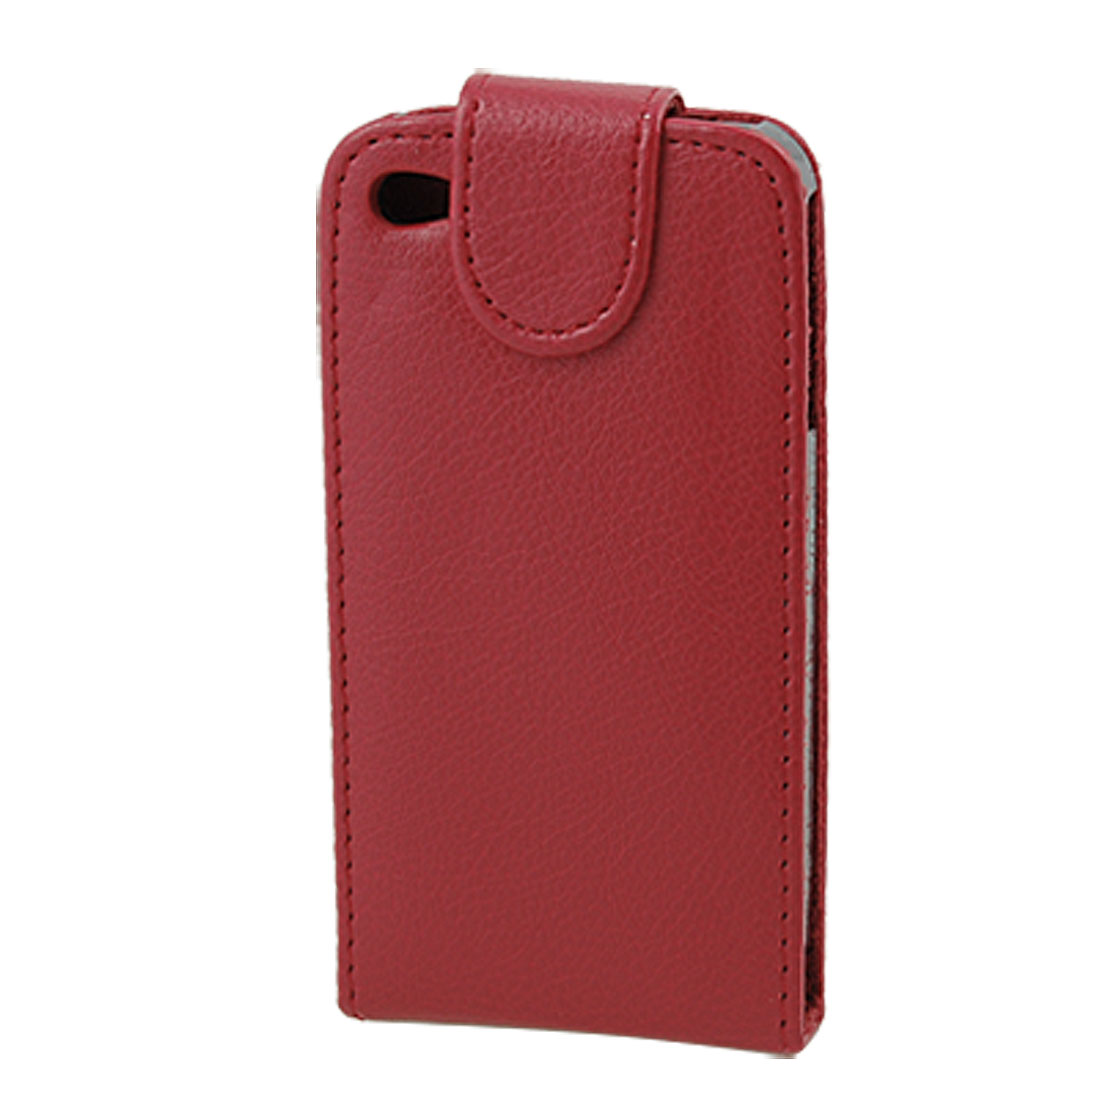 Red Faux Leather Vertical Pouch Case for iPhone 4 4G Ifzgv